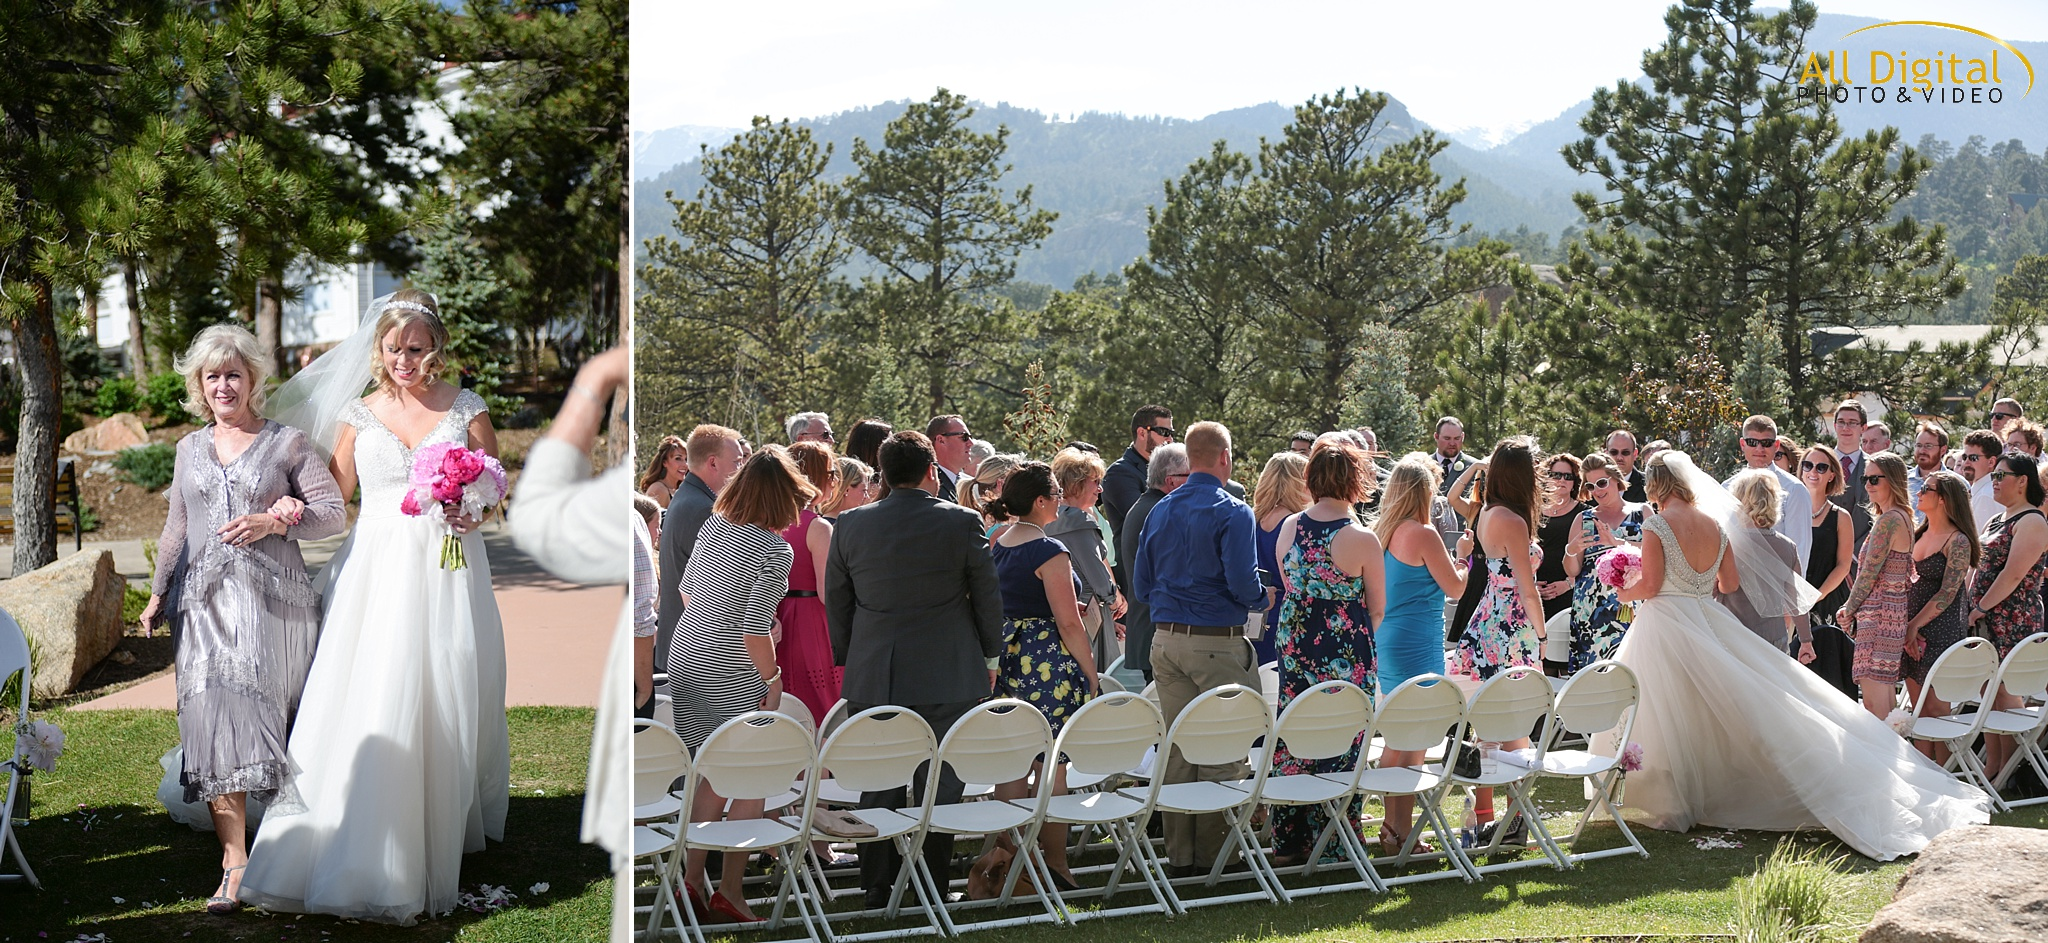 Wedding Ceremony at the Stanley Hotel in Estes Park, Colorado.